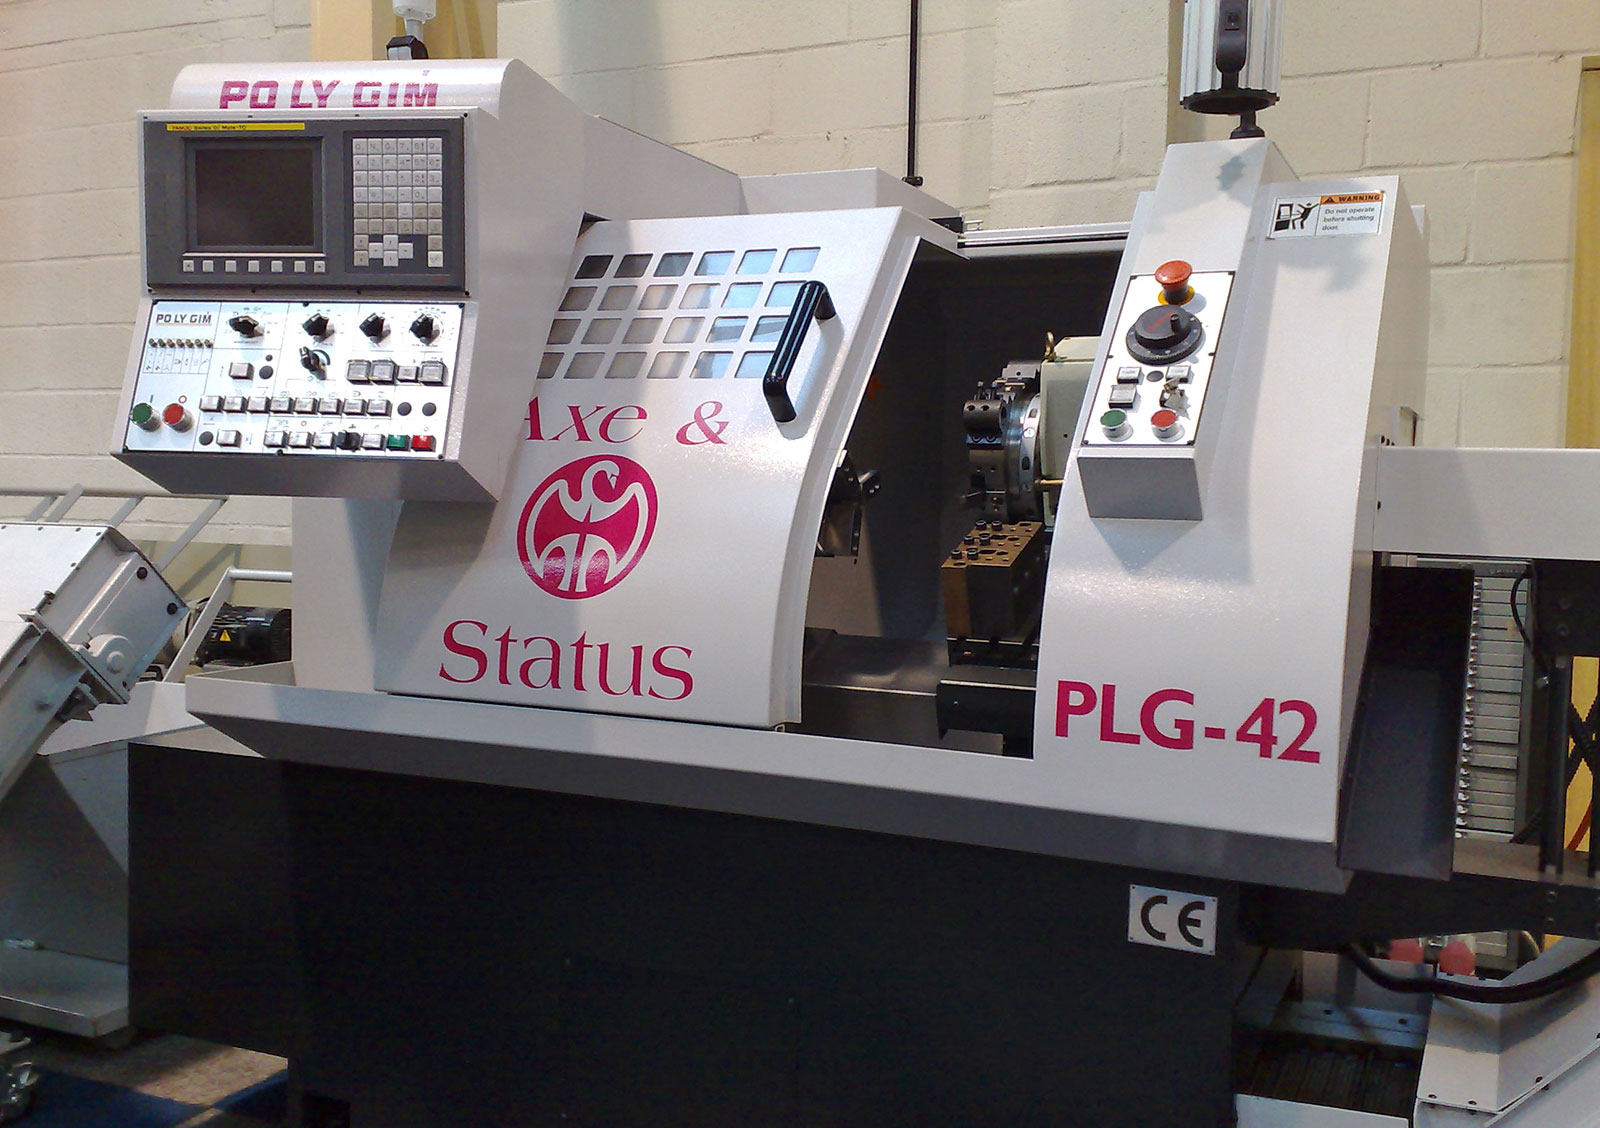 Polygim Cnc Lathes Plg 42 Cnc Lathes And Pressbrakes Cnc Machine Tools And Sheet Metal Machinery